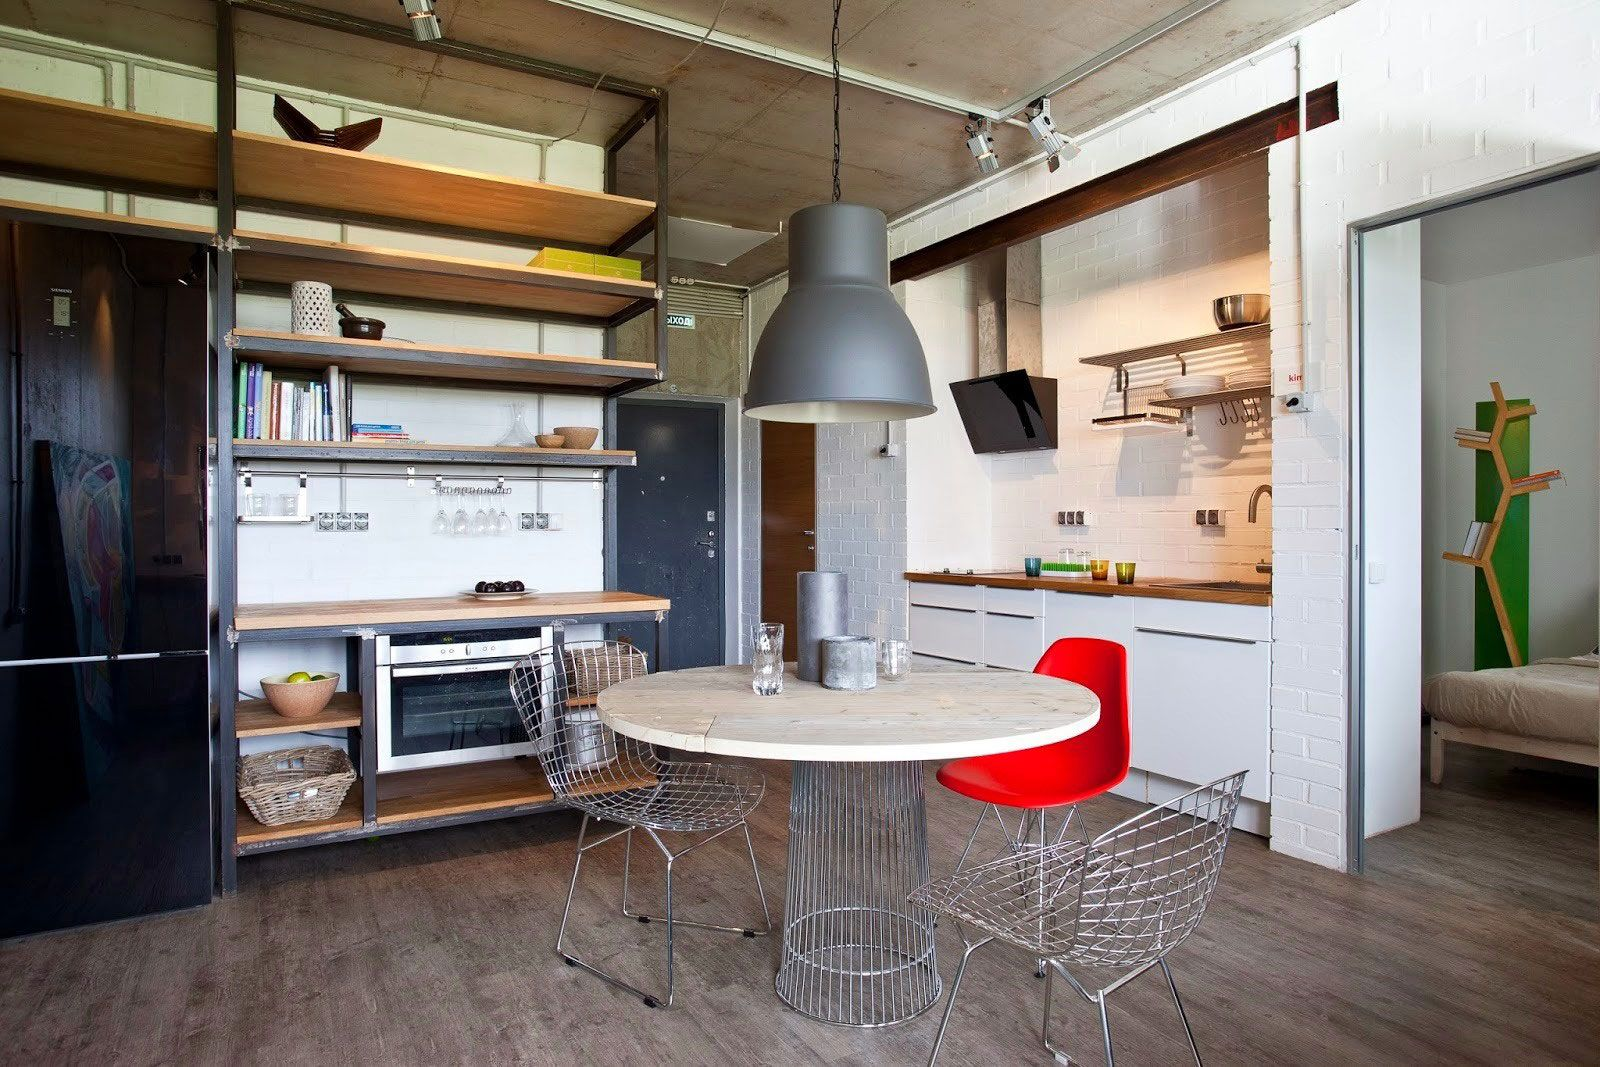 Concrete Wall Apartment in Krasnogorsk by Studio Odnushechka-06 | Kr ...